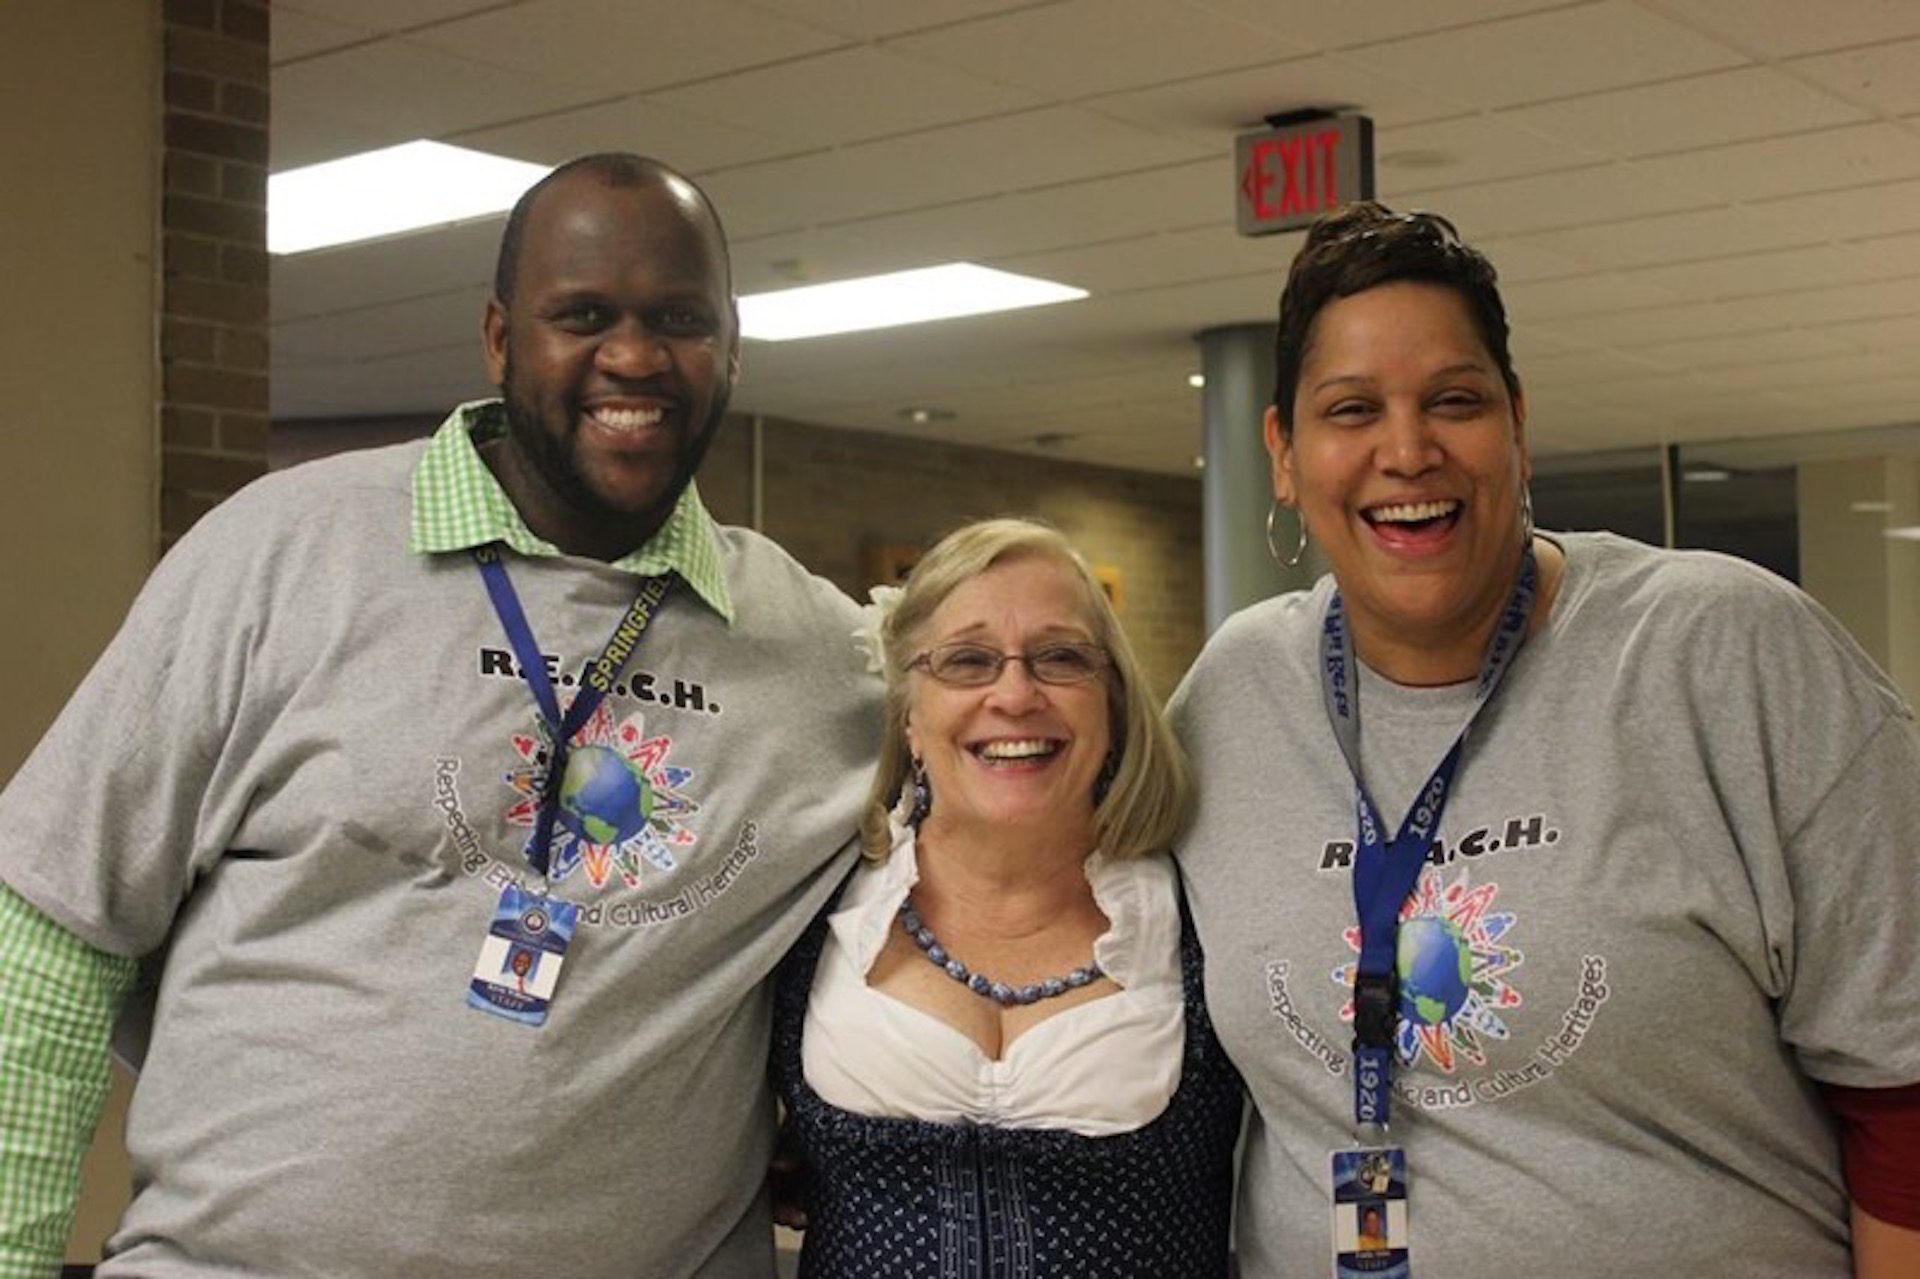 Springfield High School teacher, Fonda Akins (far right) with colleagues at 2015 school diversity night, which may be cancelled this year due to the spread of COVID-19.